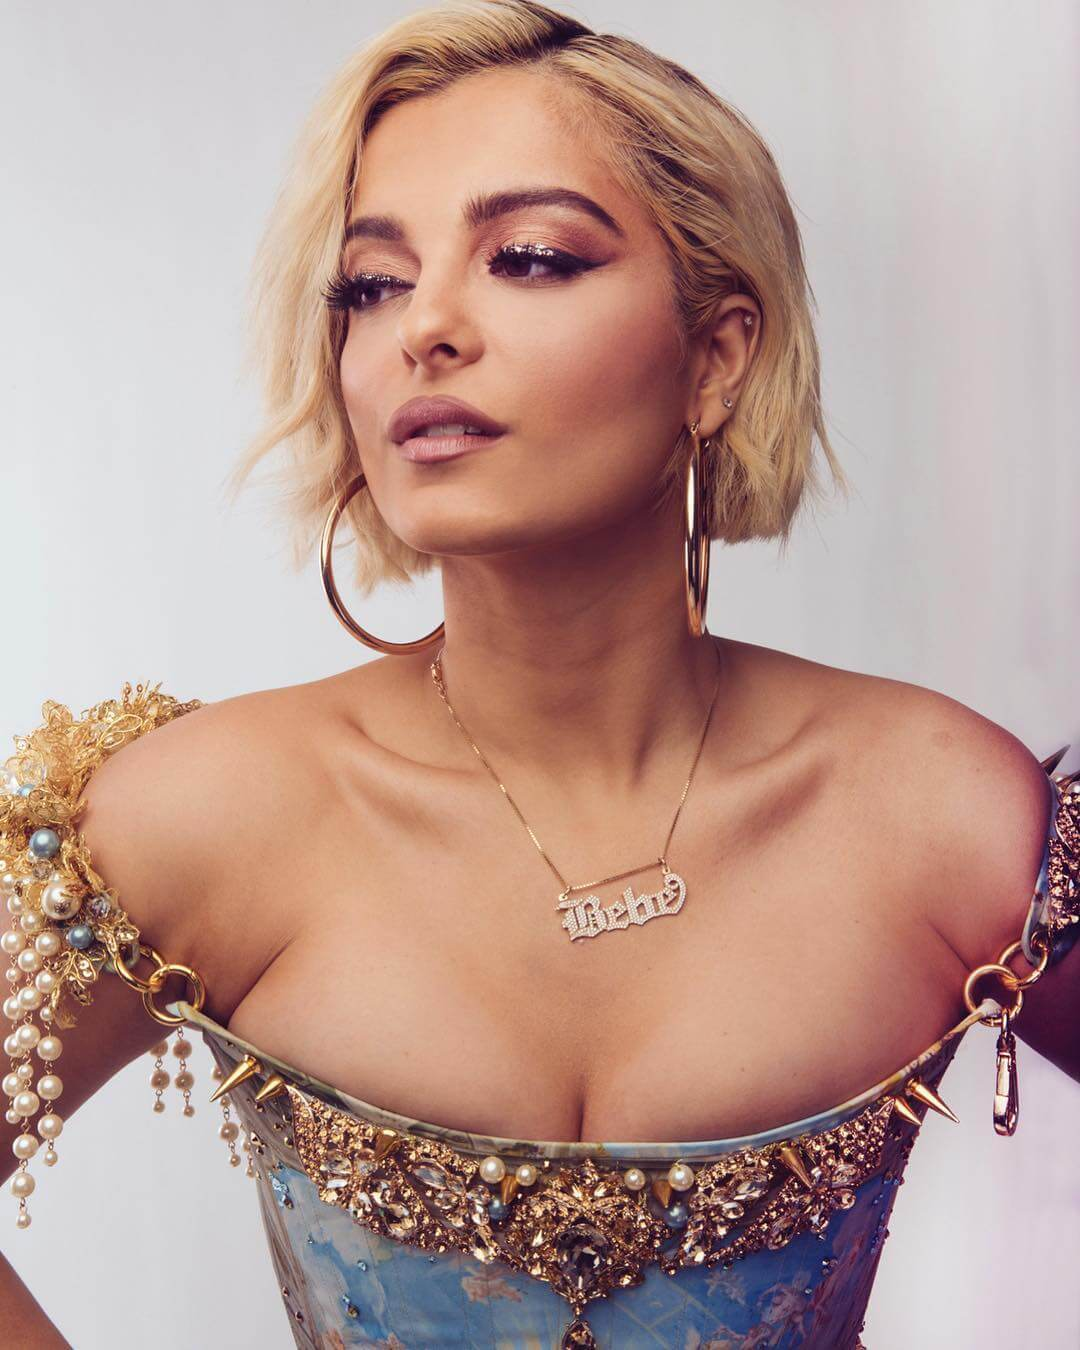 Bebe Rexha sexy cleavage pictures